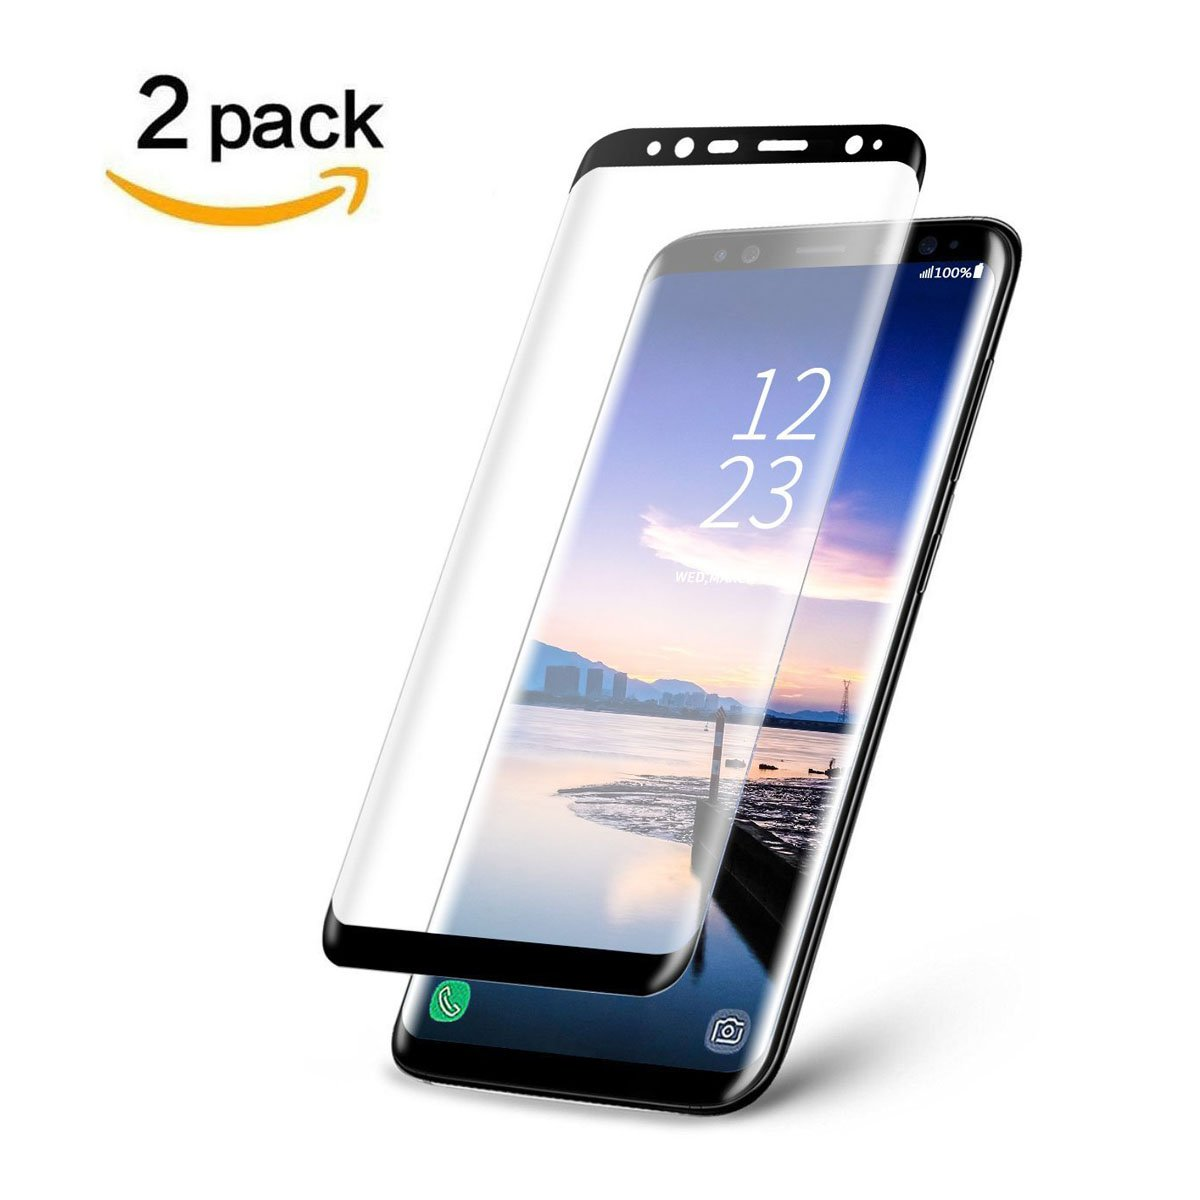 LEDitBe Galaxy S9 Screen Protector, Full Screen Tempered Glass Screen Protector Film, Edge to Edge Protection Screen Cover Saver Guard for 3D 9H Hardness Samsung Galaxy S9 Black